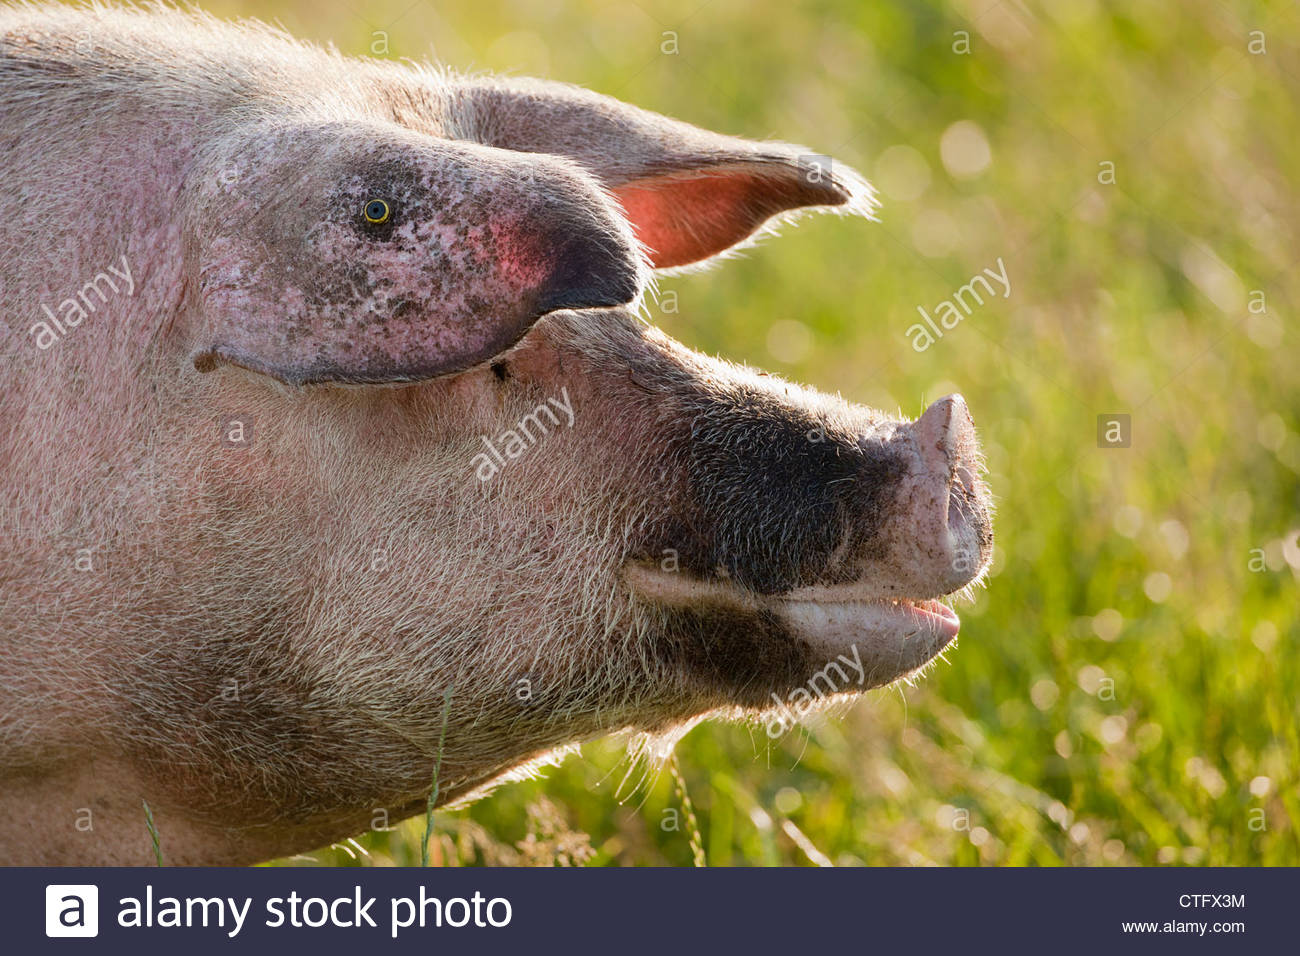 The Netherlands, Kortenhoef, Pigs. Sow. - Stock Image